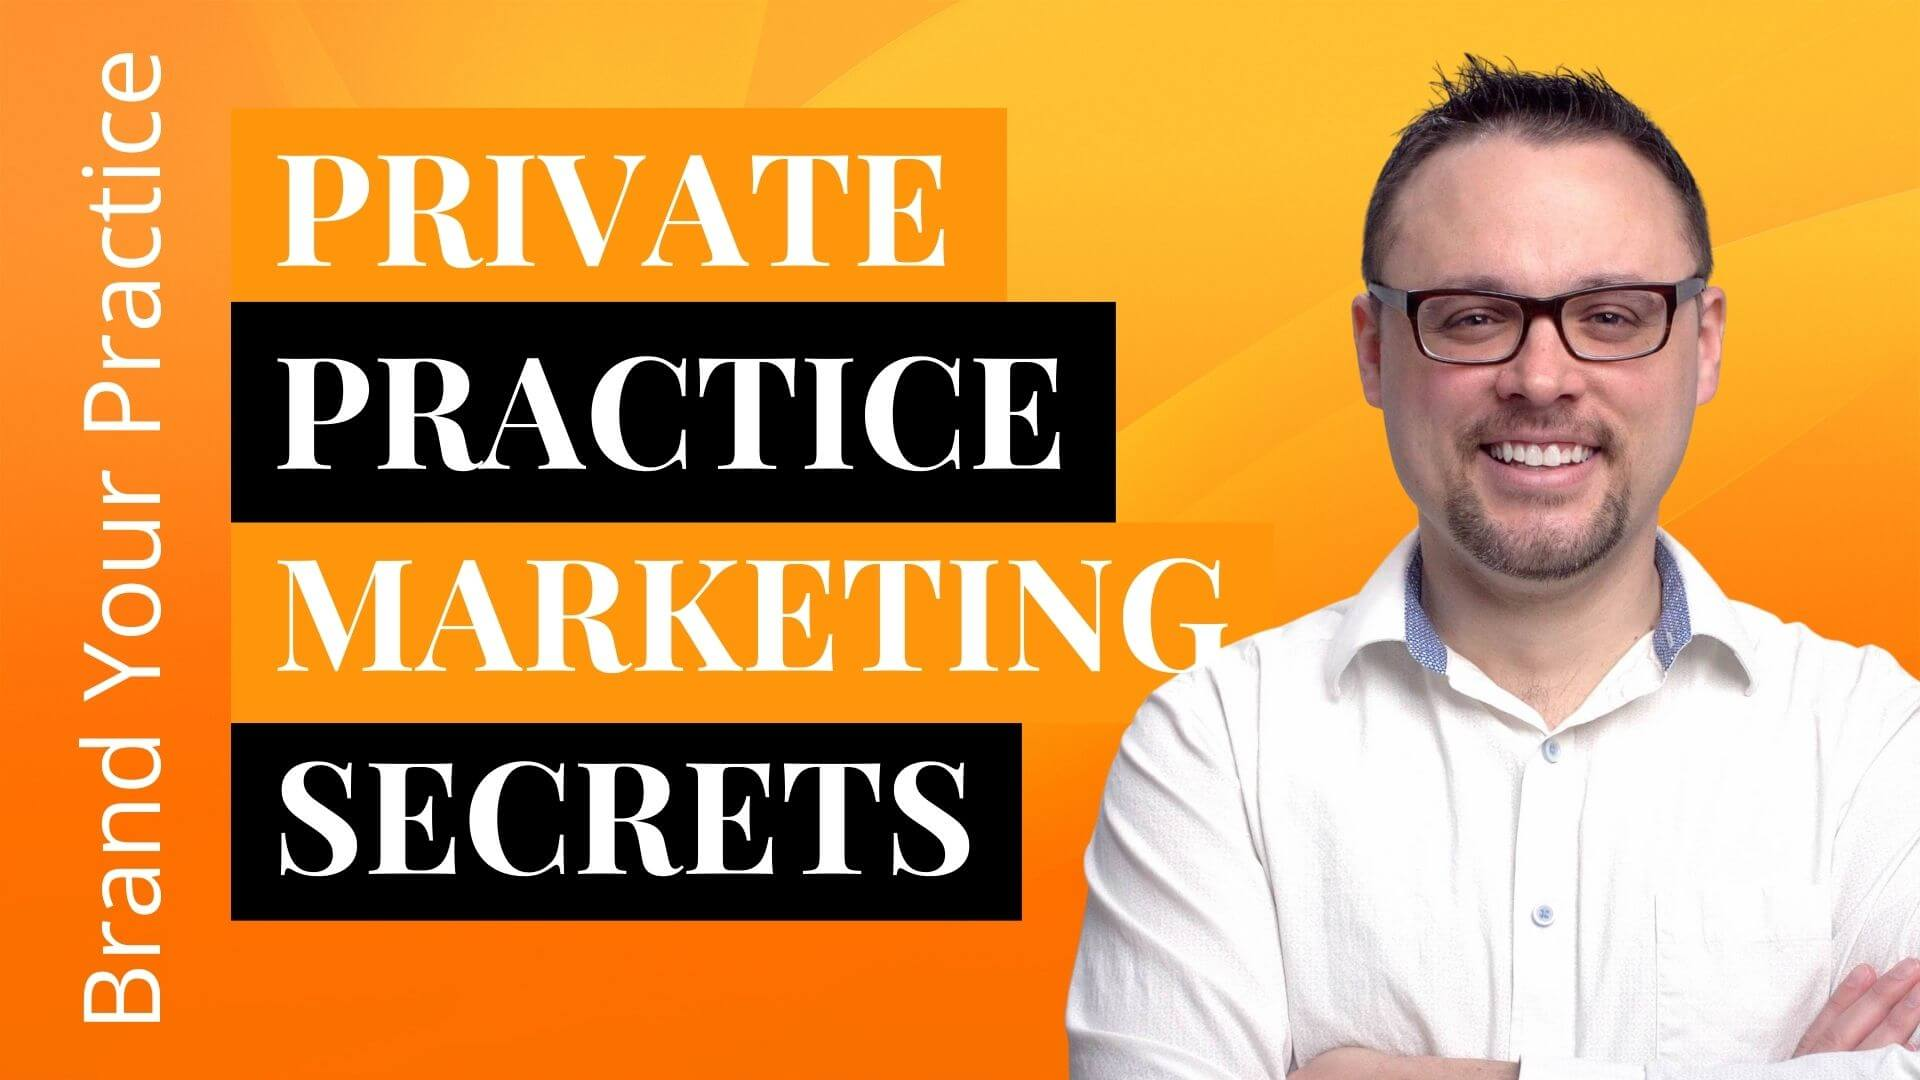 Private Practice Marketing Secrets Course